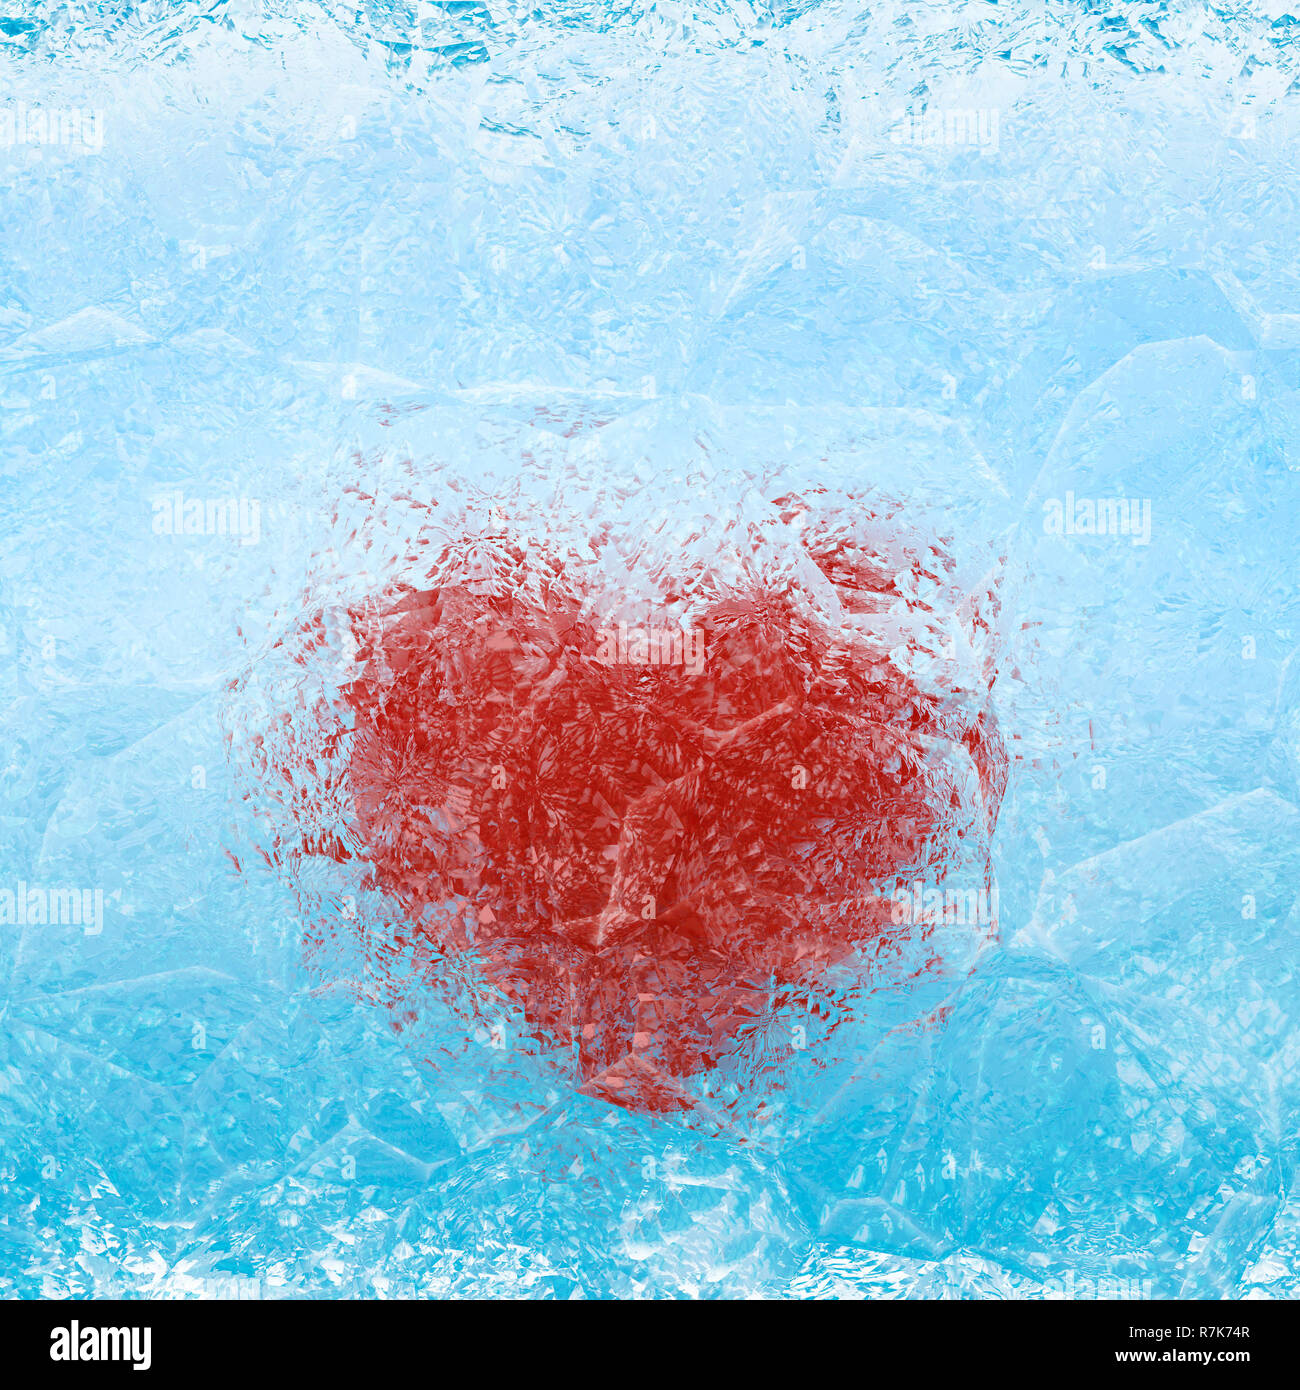 Frozen heart in blue white ice - Stock Image